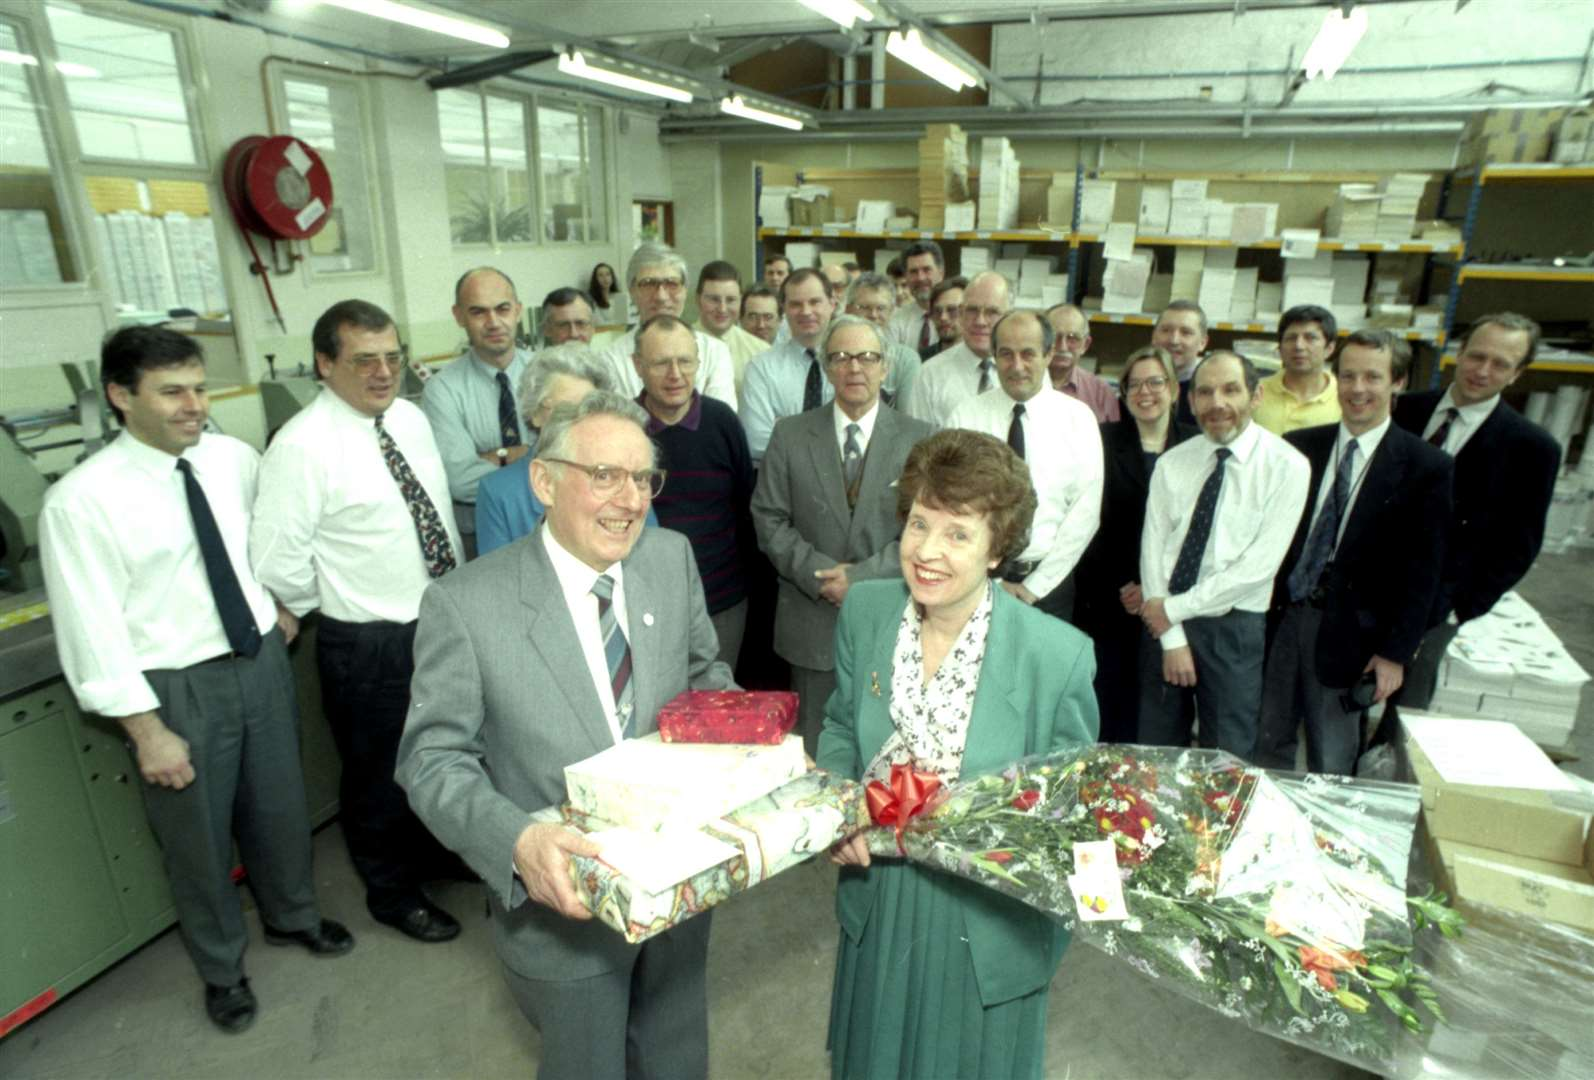 Staff at Terence Chedgey's retirement in March 1996